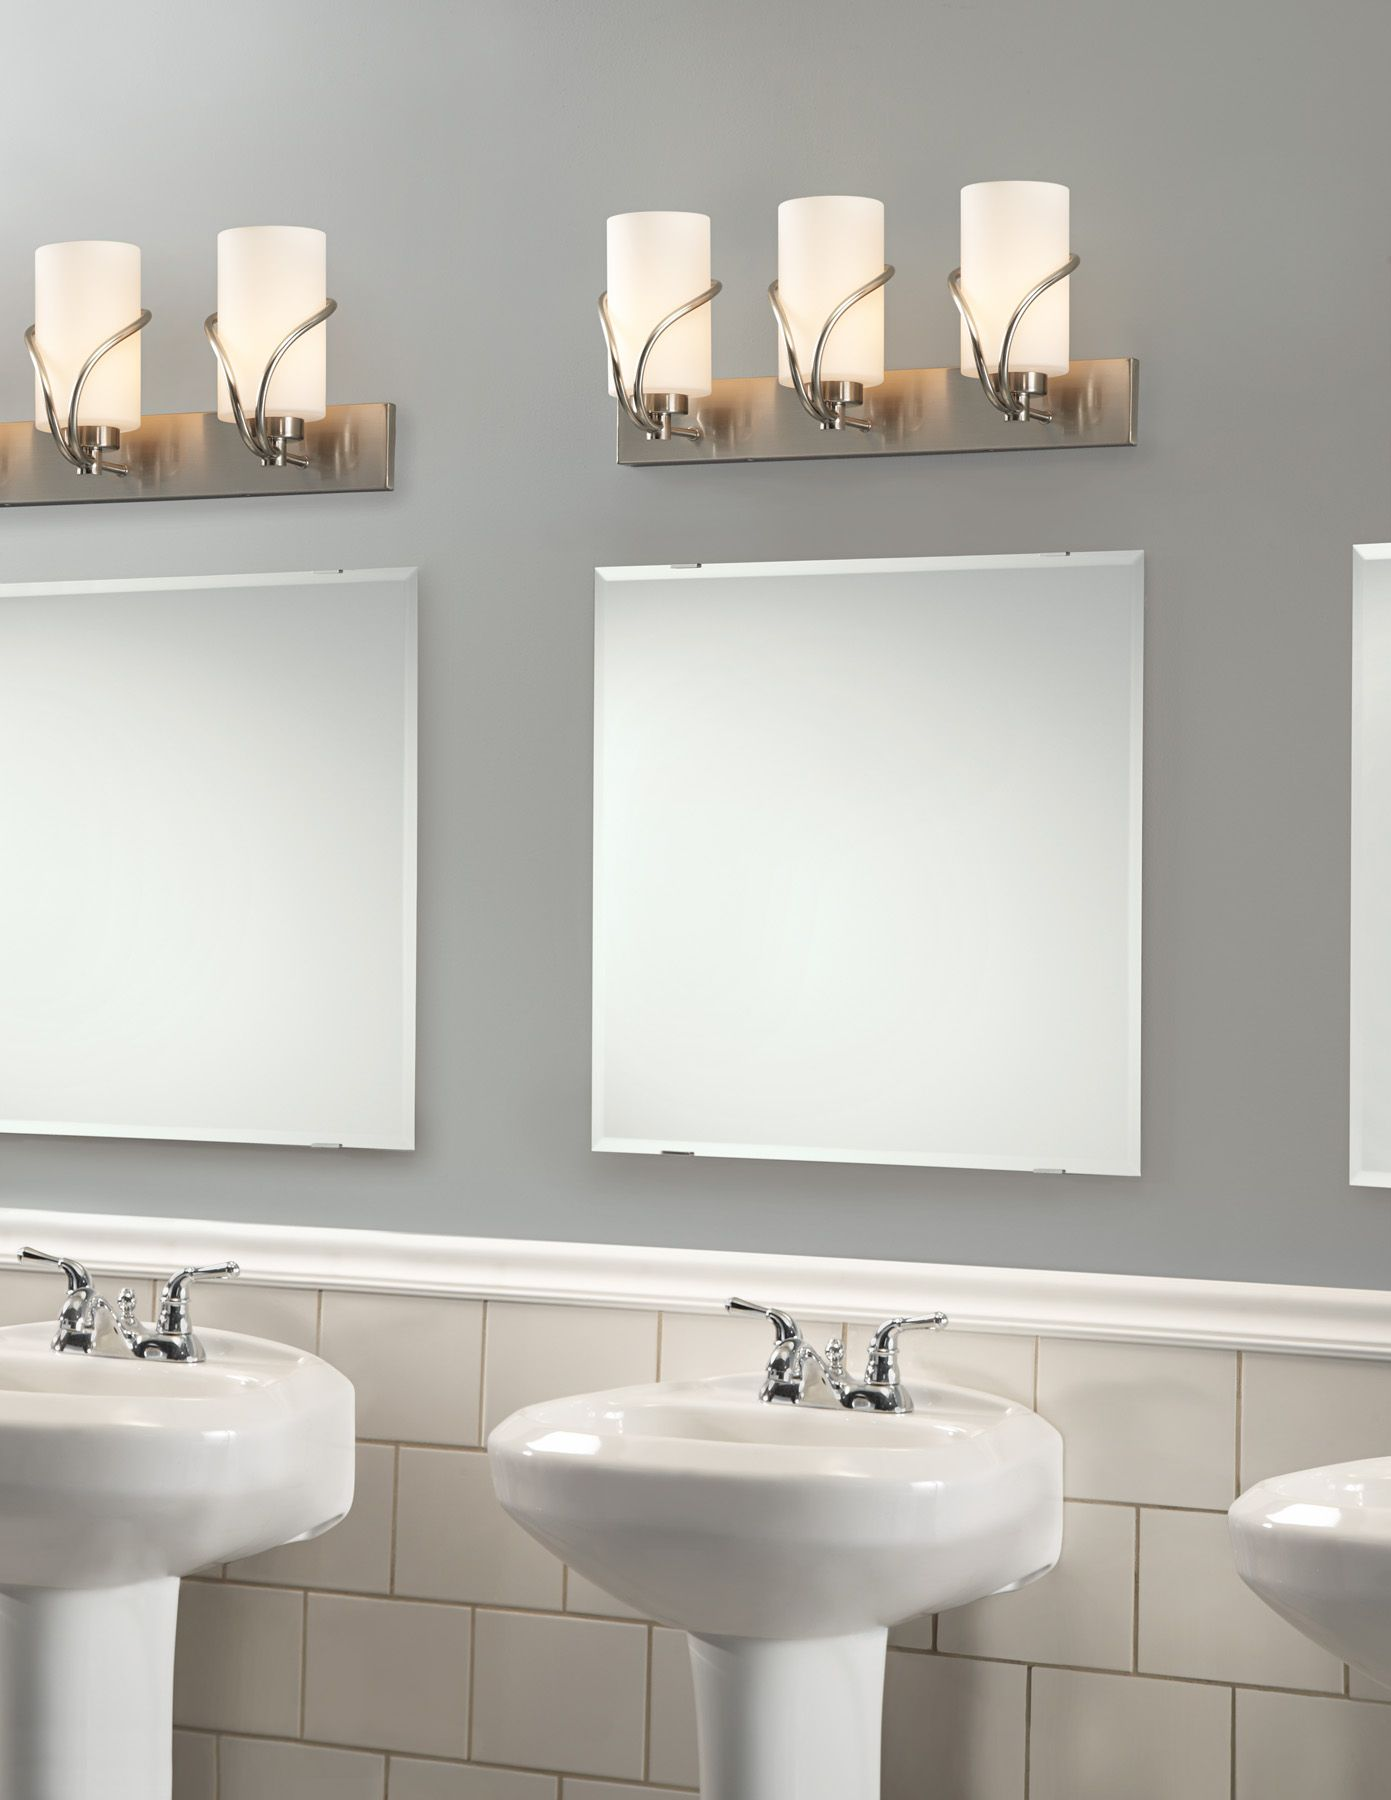 Photo Gallery In Website Awesome Bathroom Vanity Modern Lighting above Square Wall Mirror